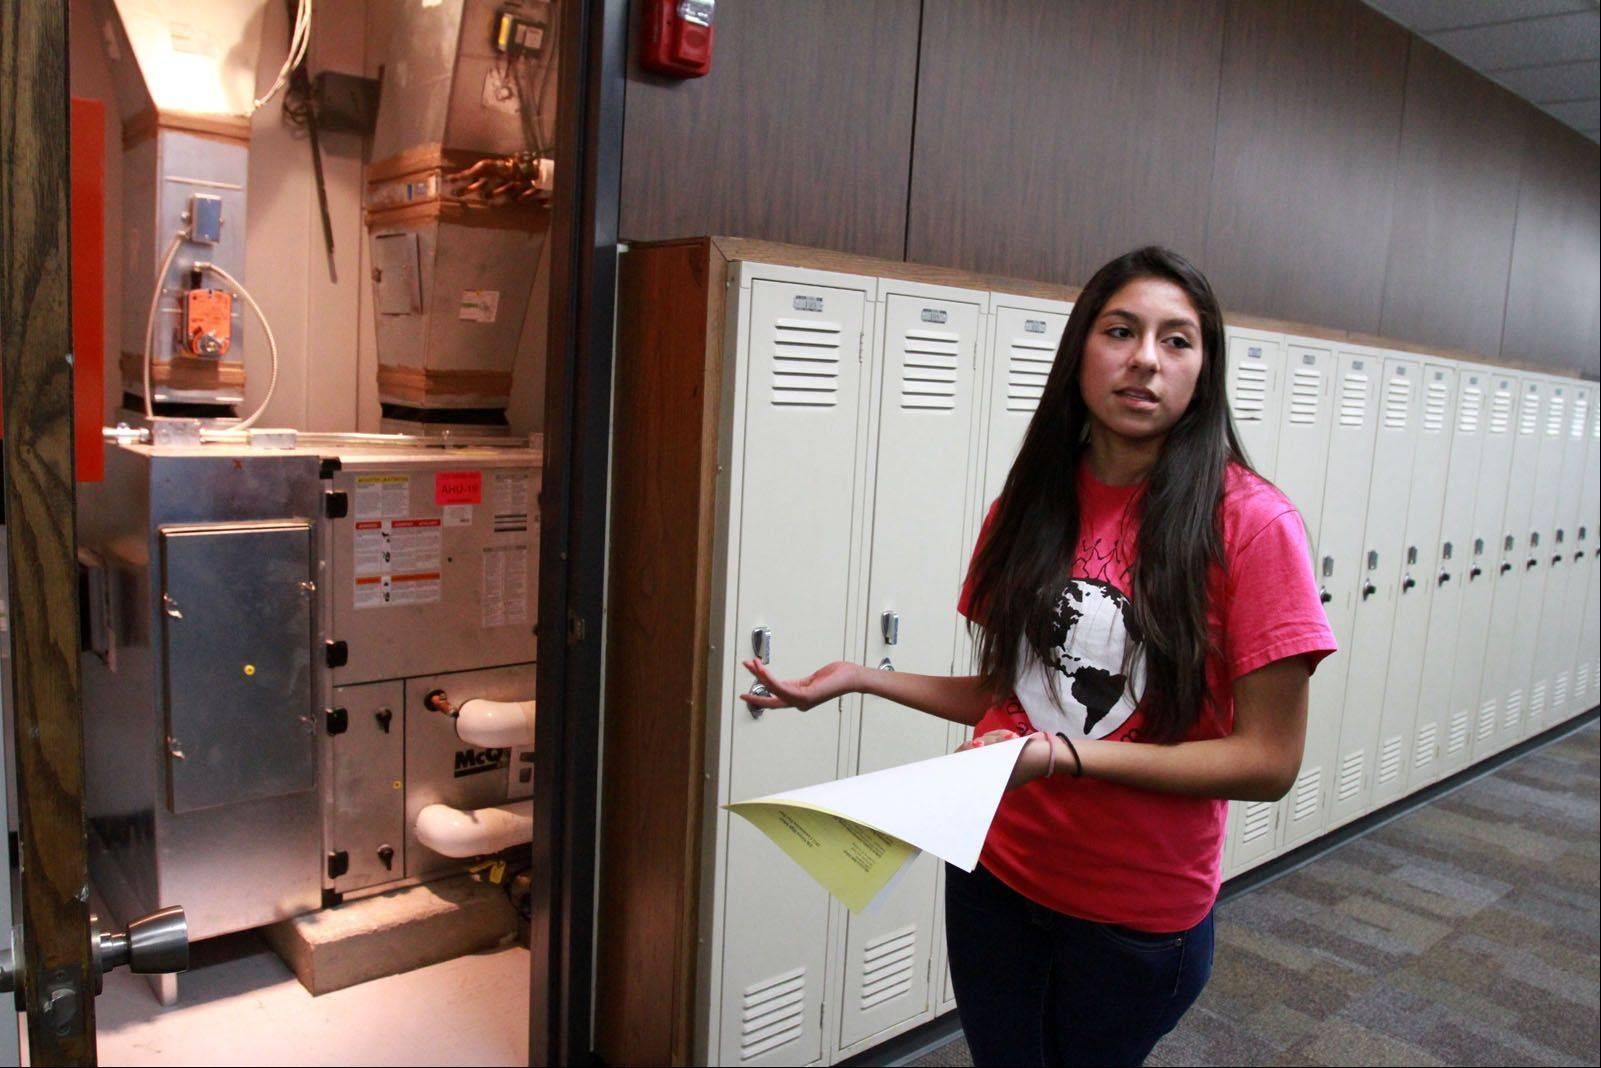 Adriana Soliz, a student at Elk Grove High School, talks about part of the school's new cooling system Wednesday during a tour of the school's multimillion dollar renovation project. The project was completed in August.